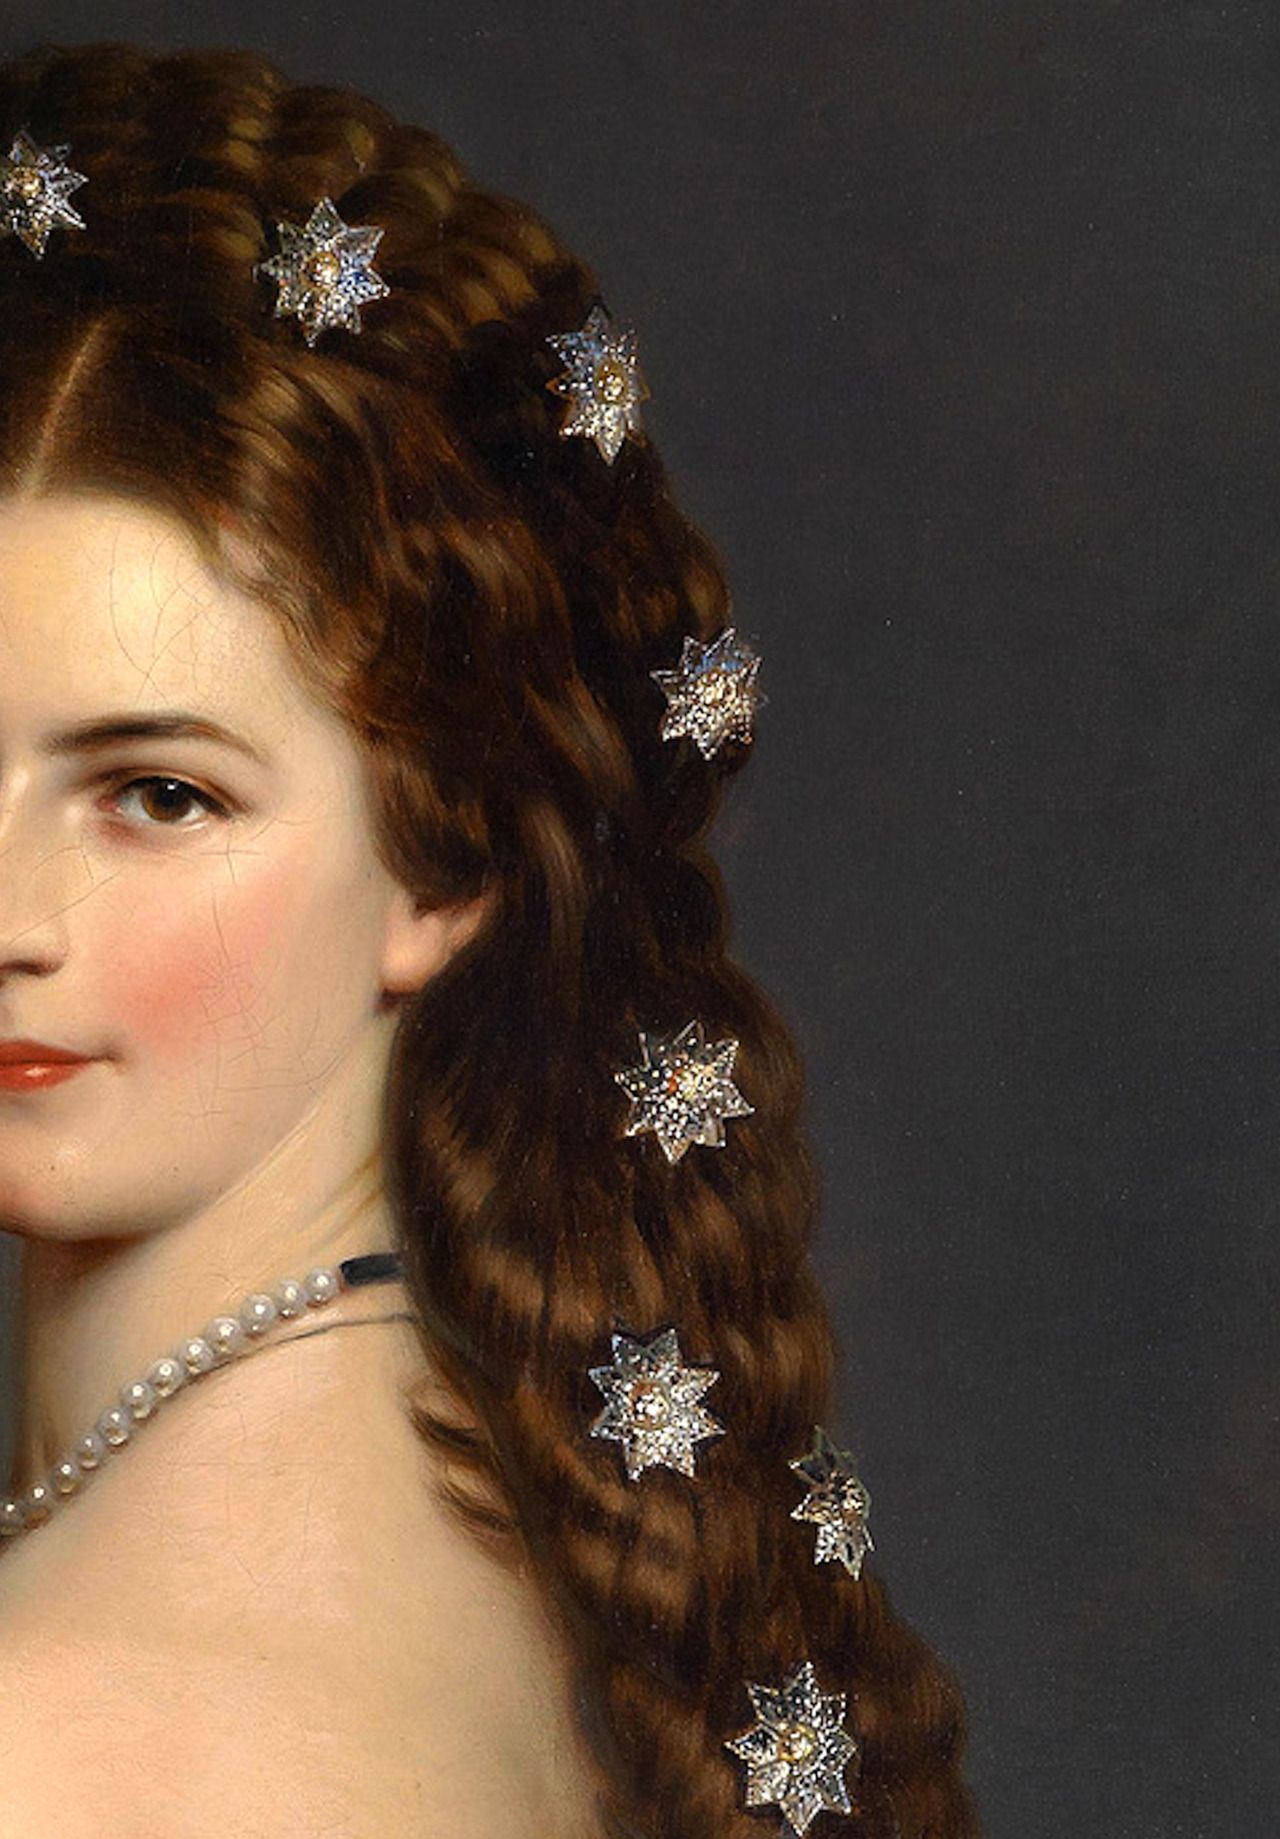 Empress Elisabeth of Austria in Courtly Gala Dress with